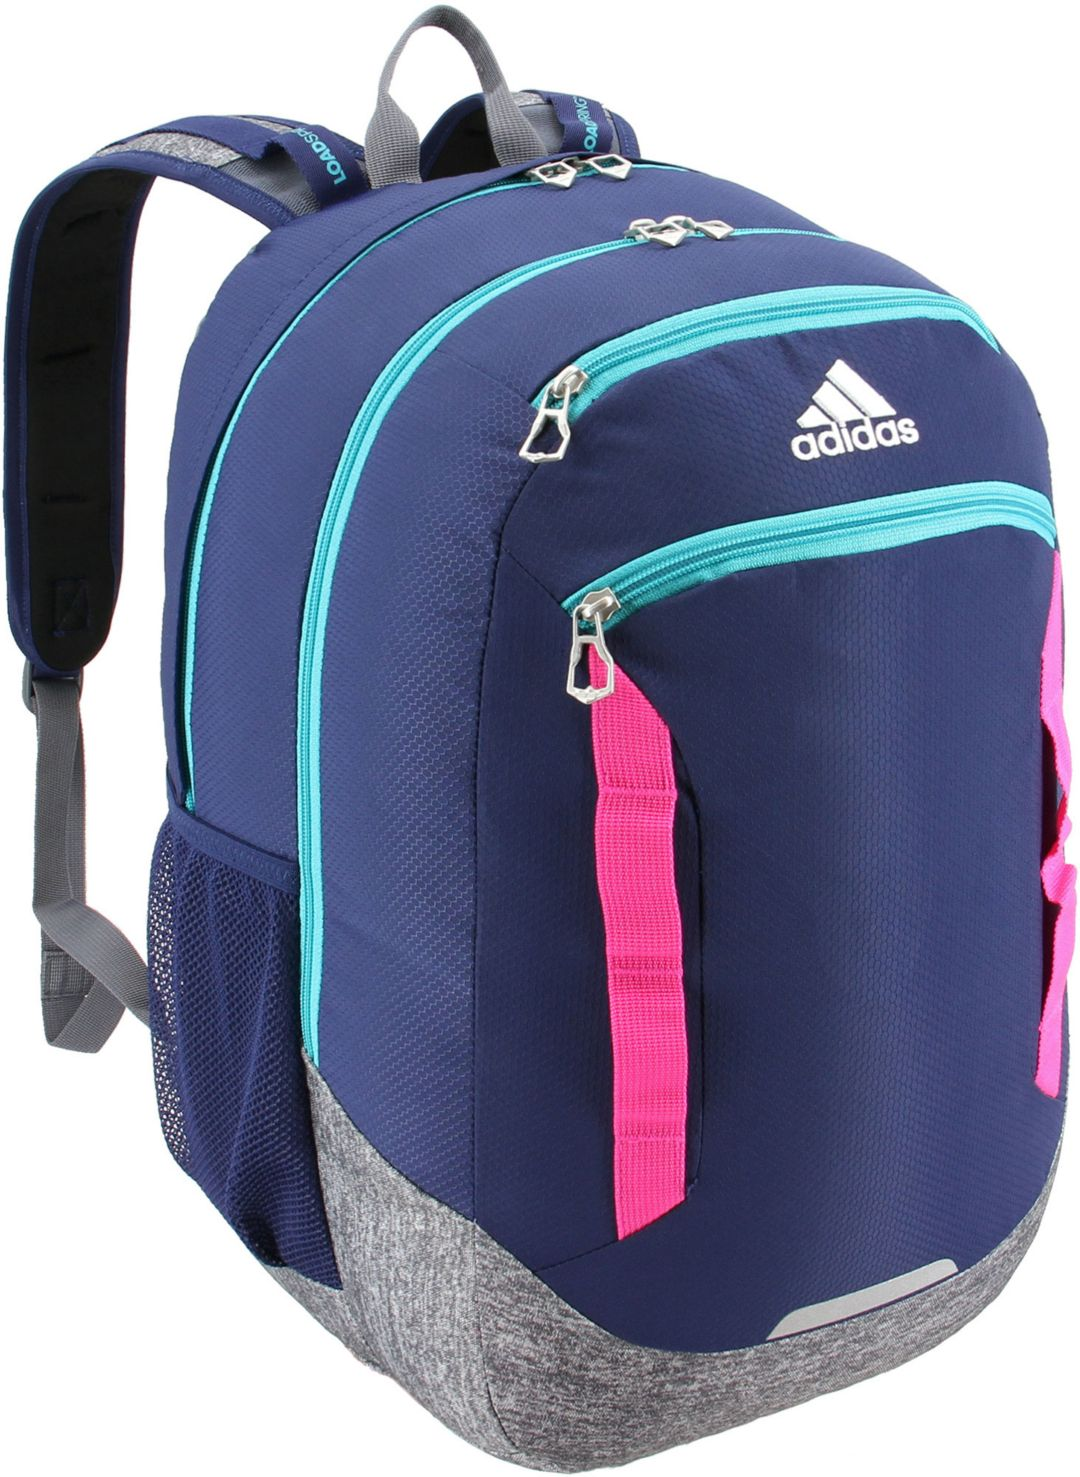 bd5cce40d2b8 adidas Excel III Backpack